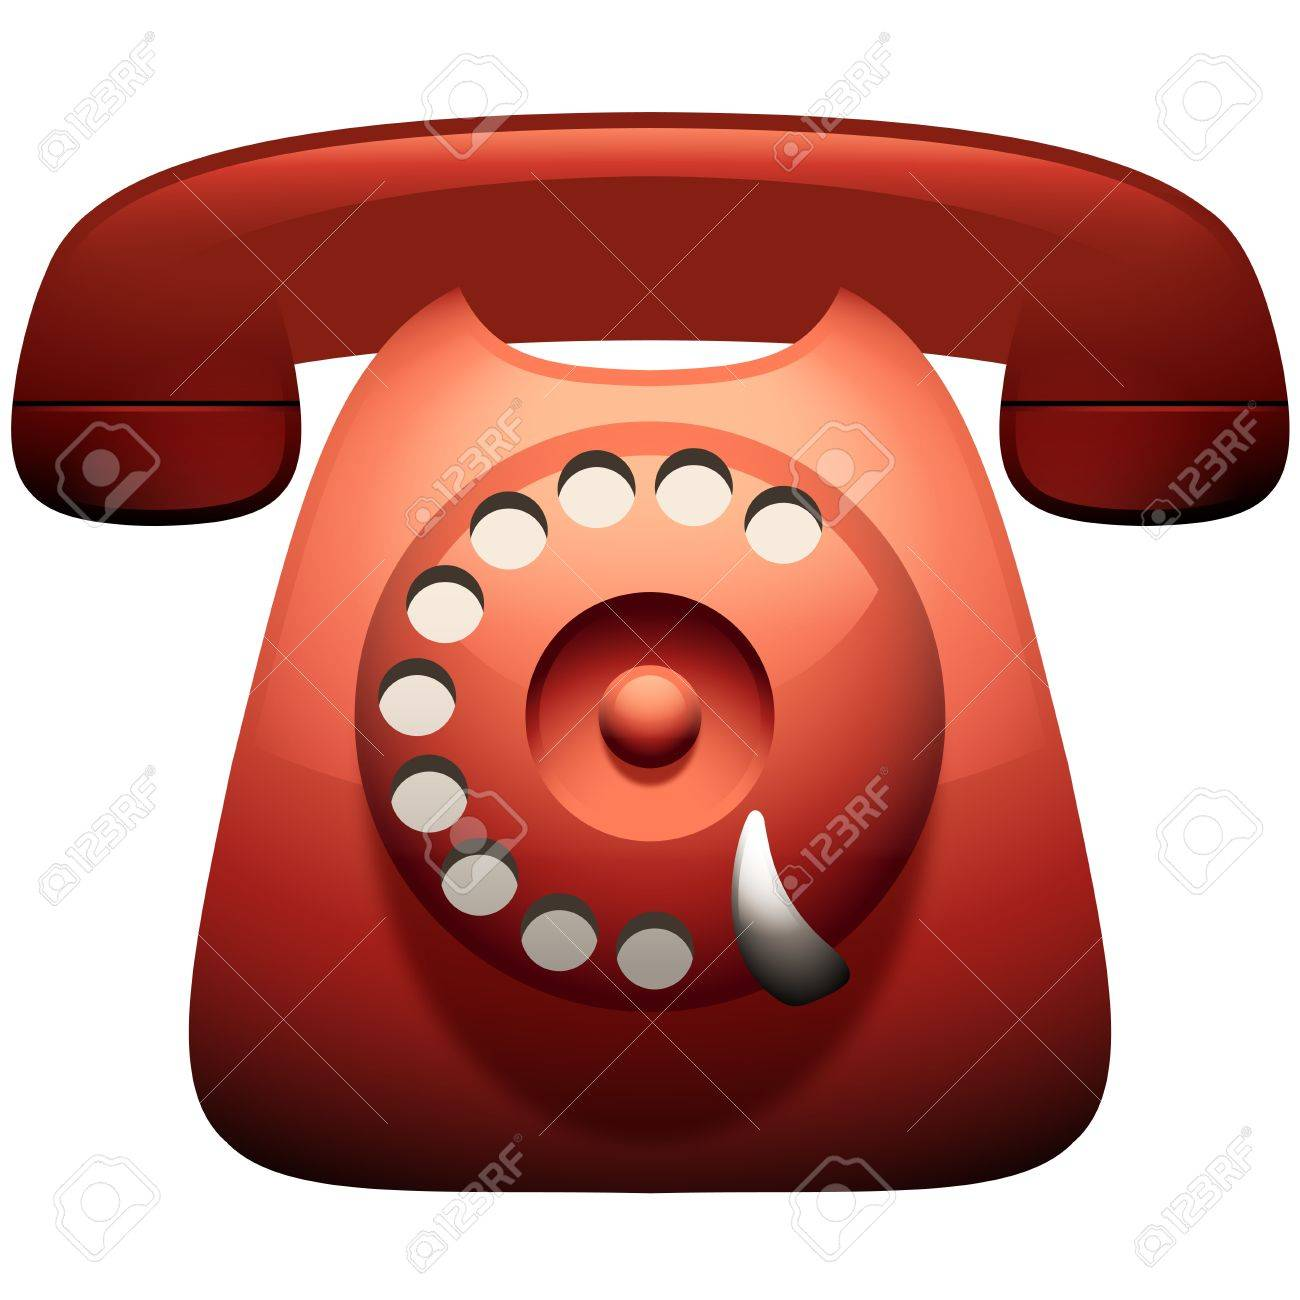 Vintage Telephone Icon Stock Vector - 14161815